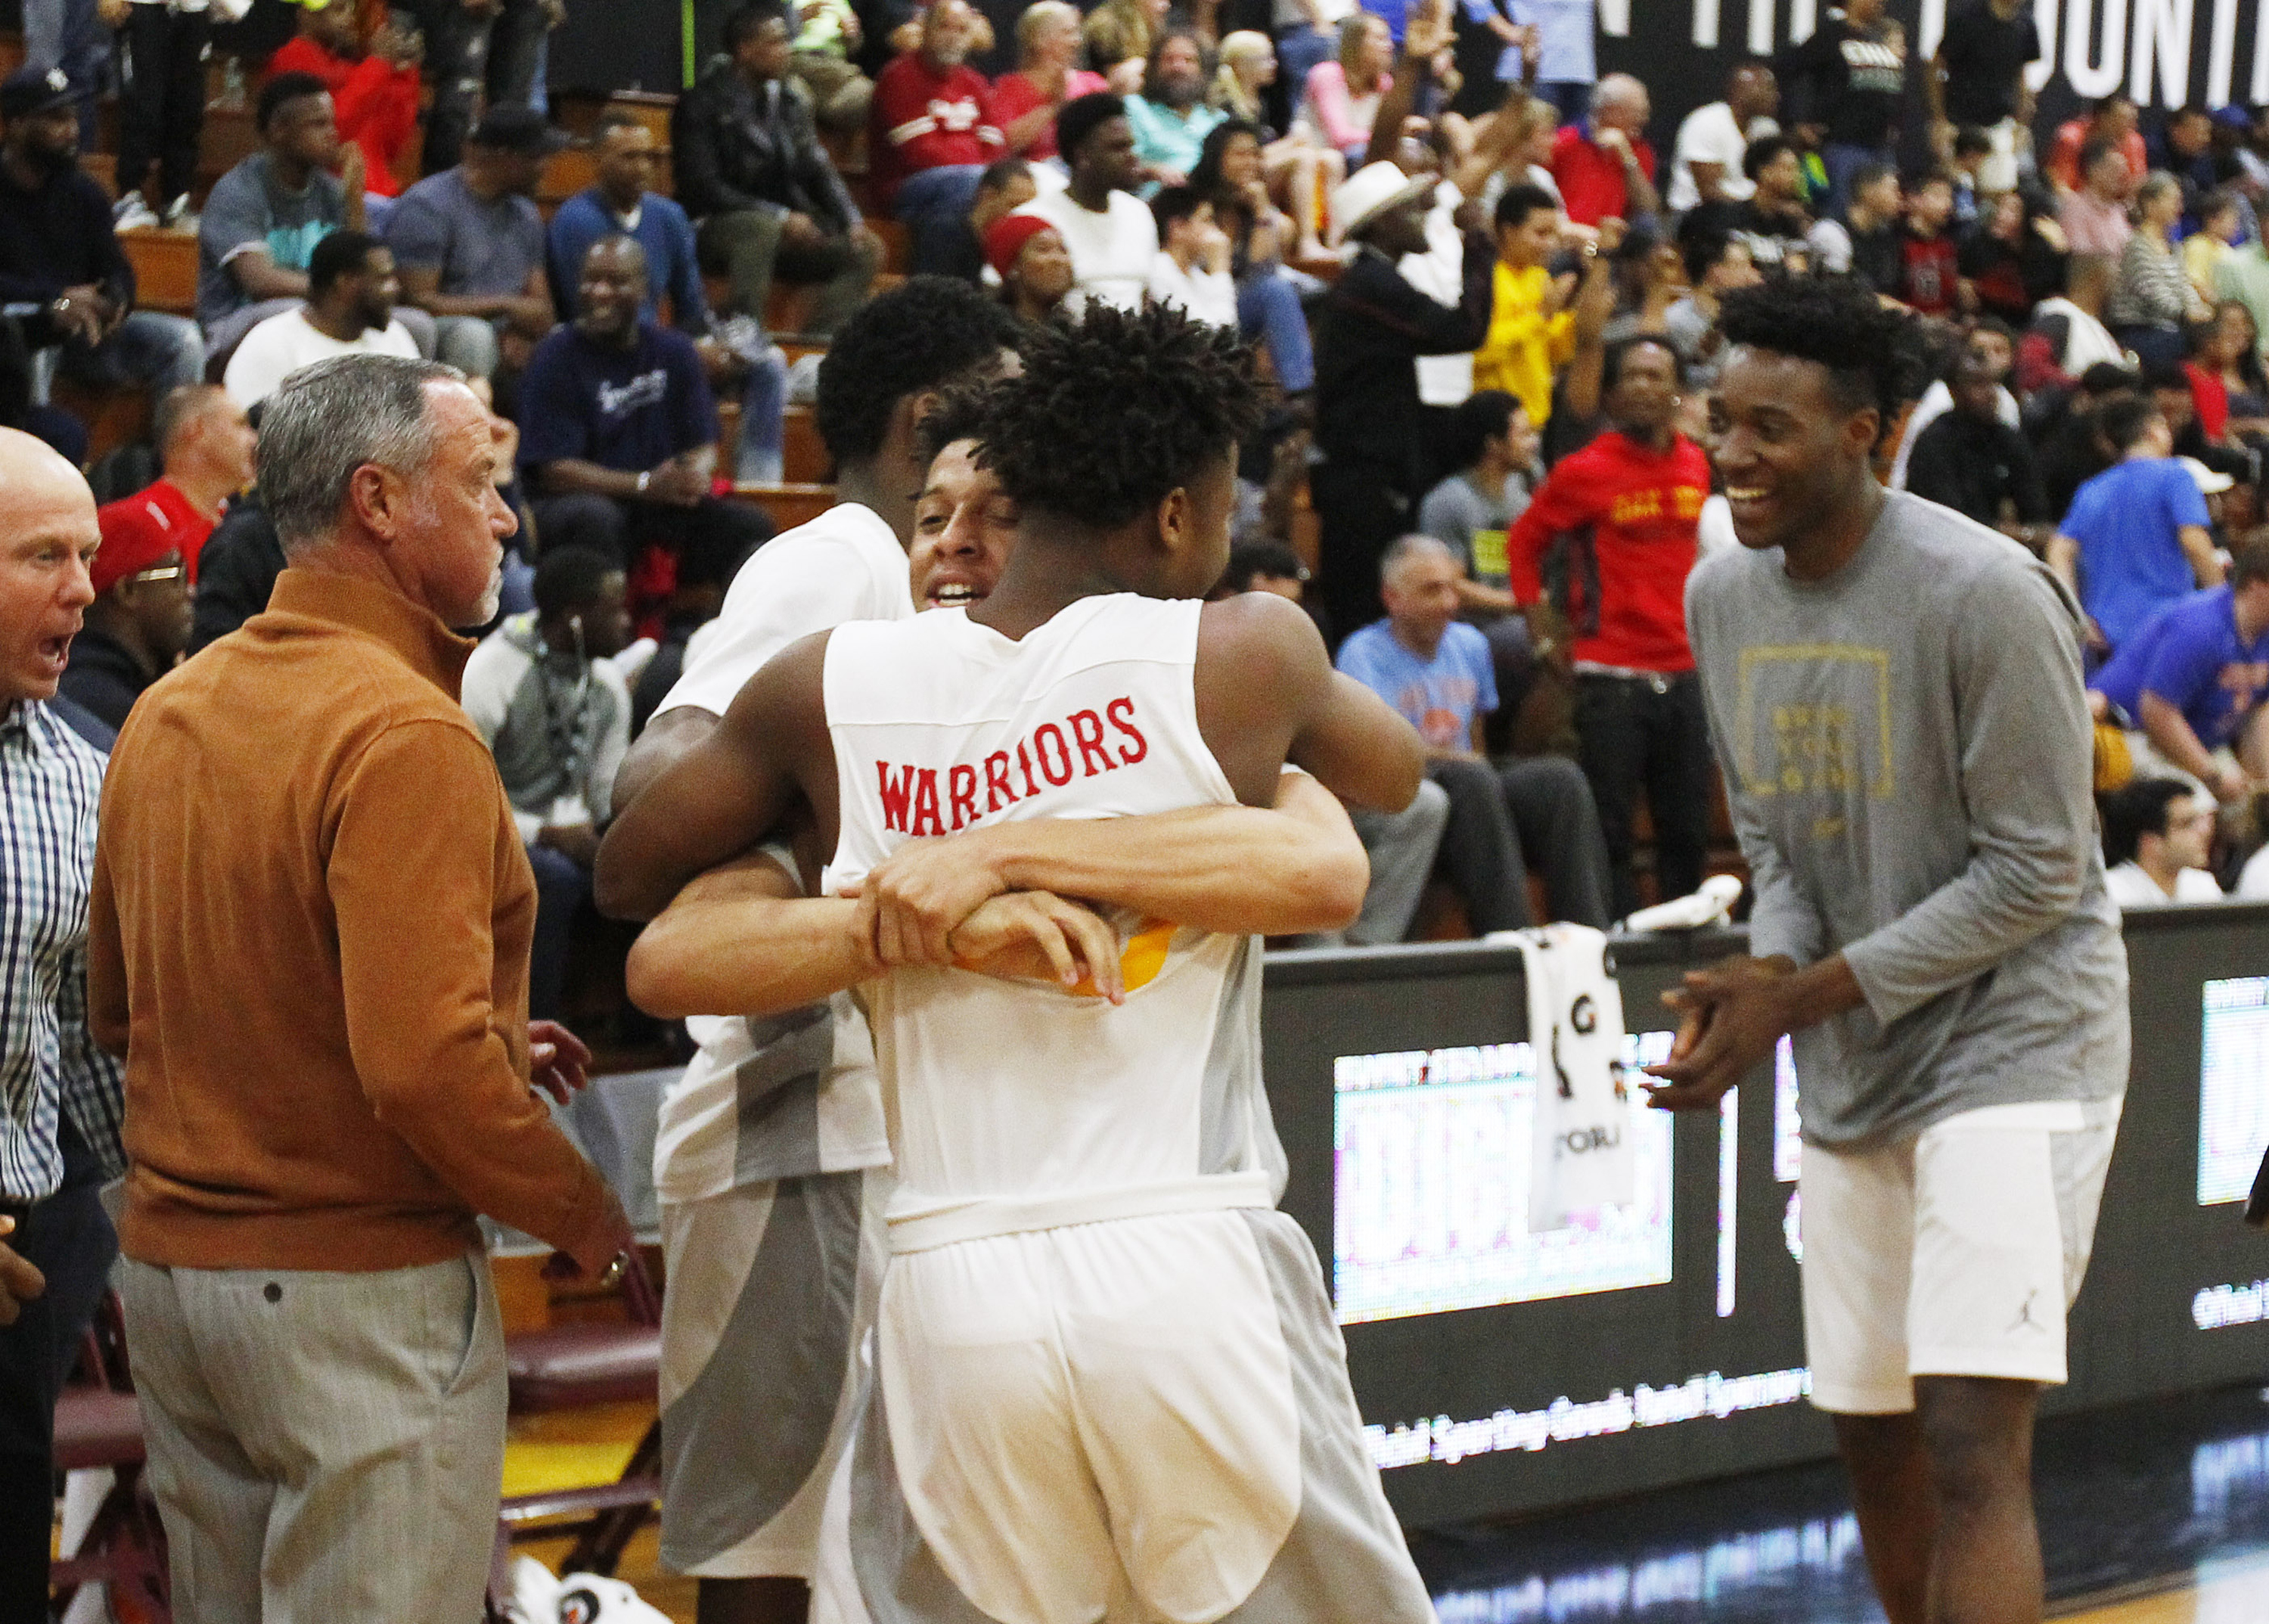 Oak Hill Academy players celebrate after defeating Miller Grove. (Photo: Andy Marlin, USA TODAY Sports)